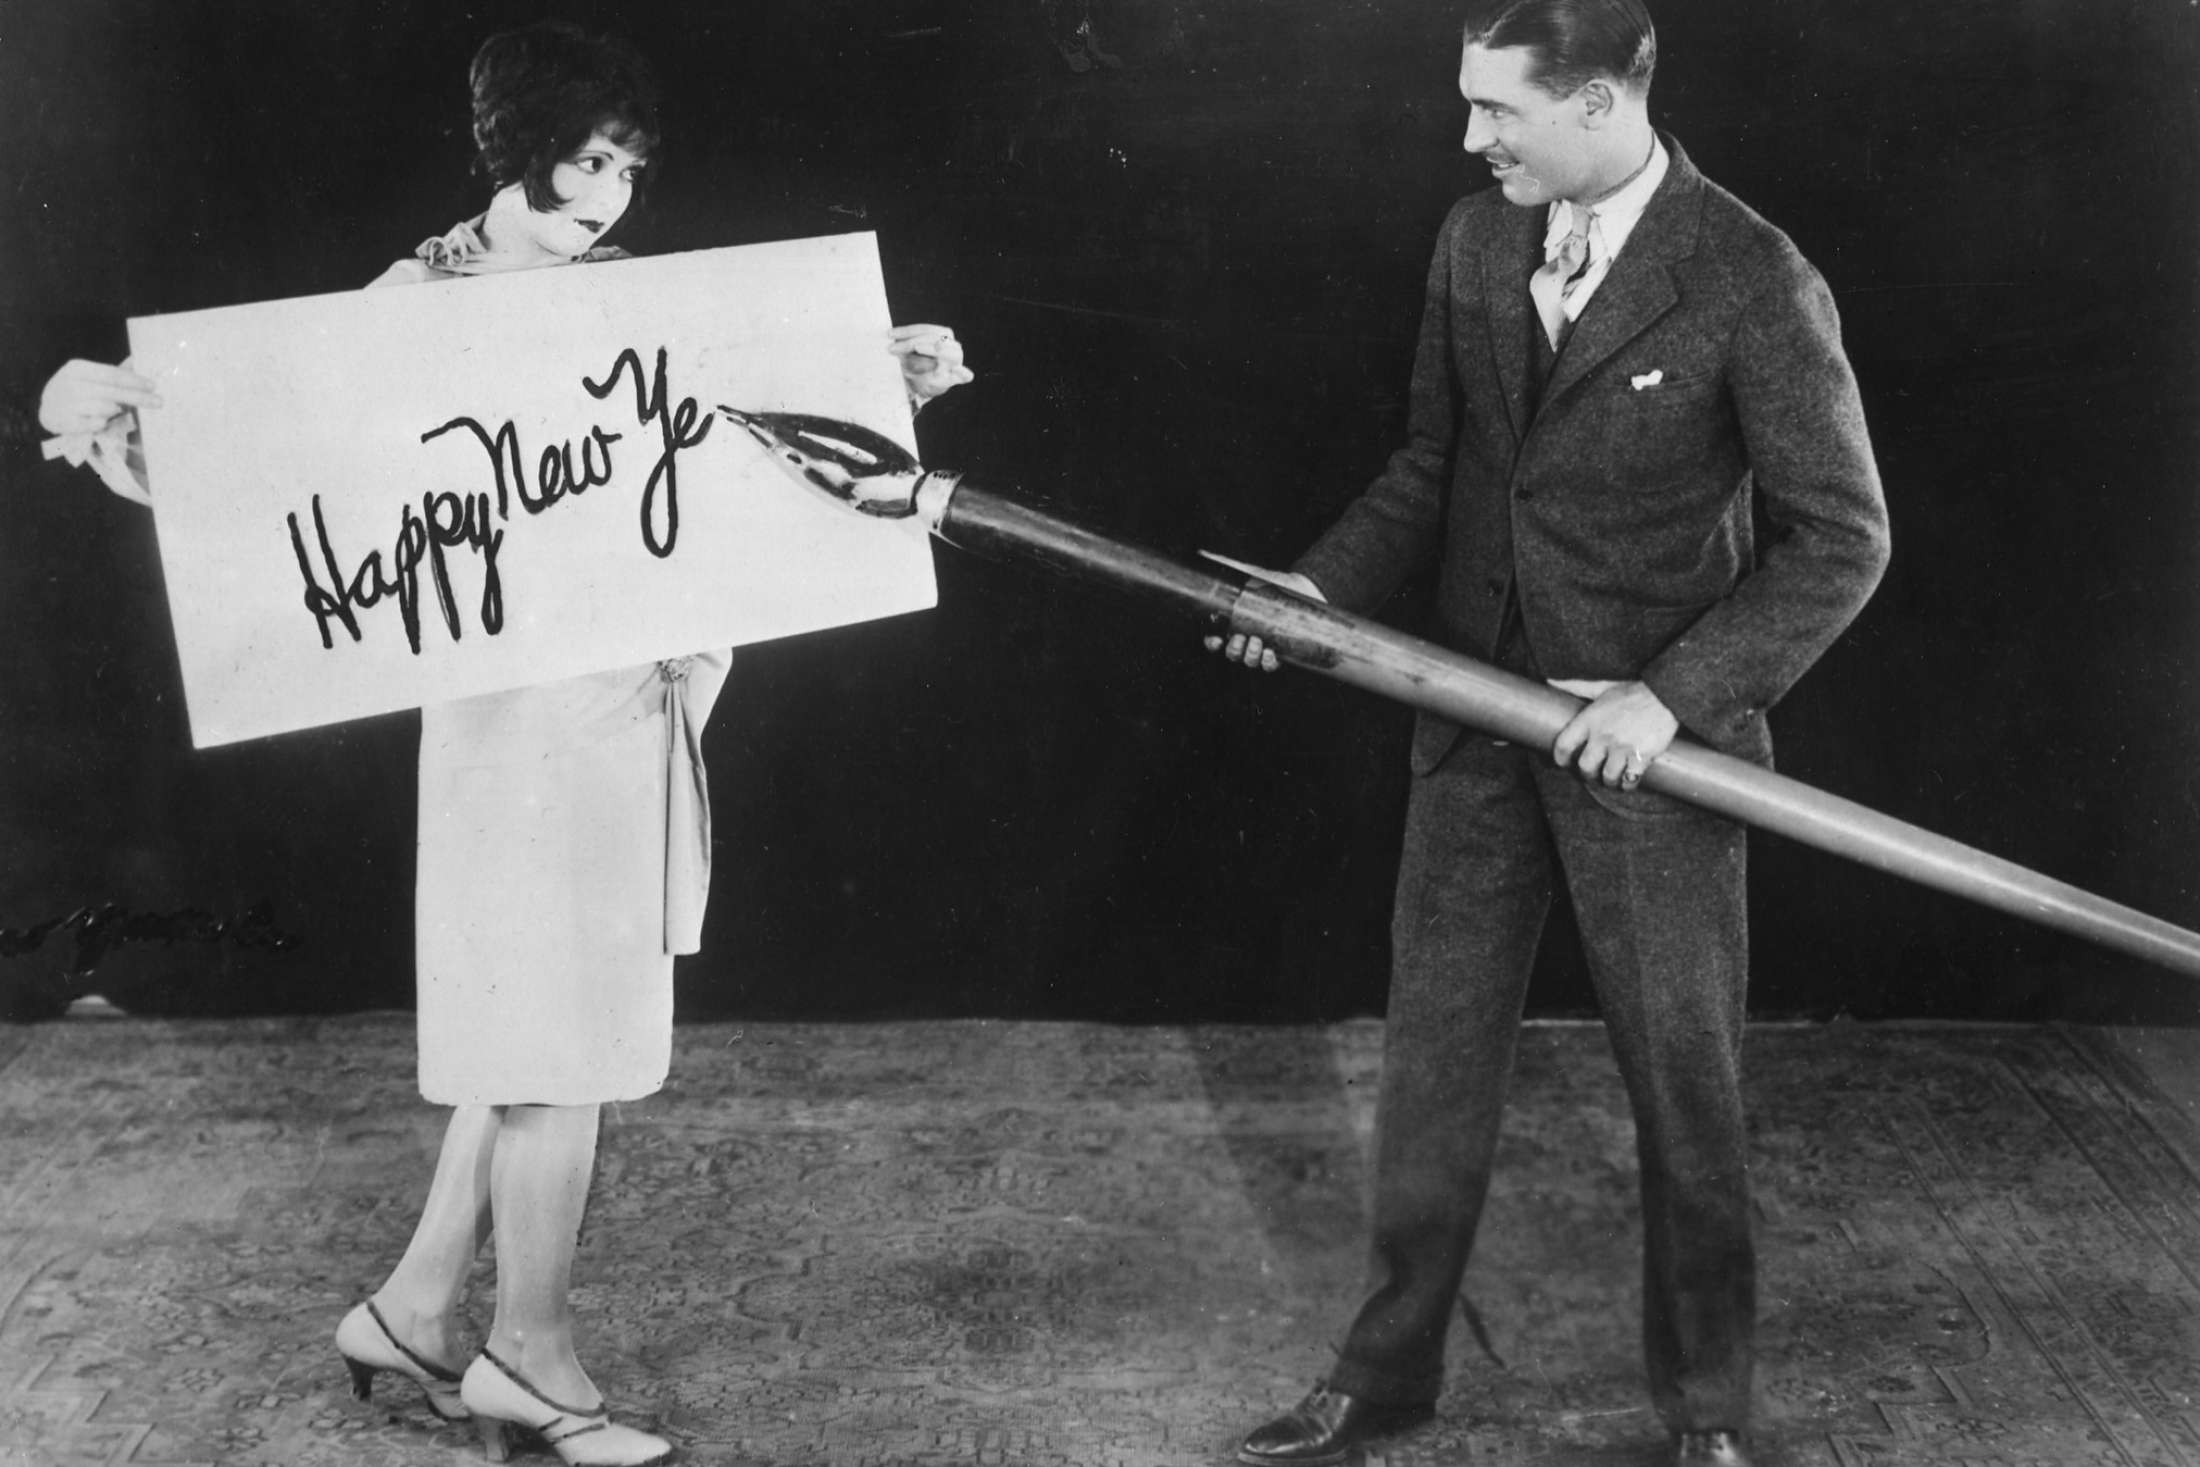 American actress Clara Bow holds up a large card while actor Larry Gray inscribes a New Year's greeting with a giant pen, 1935.